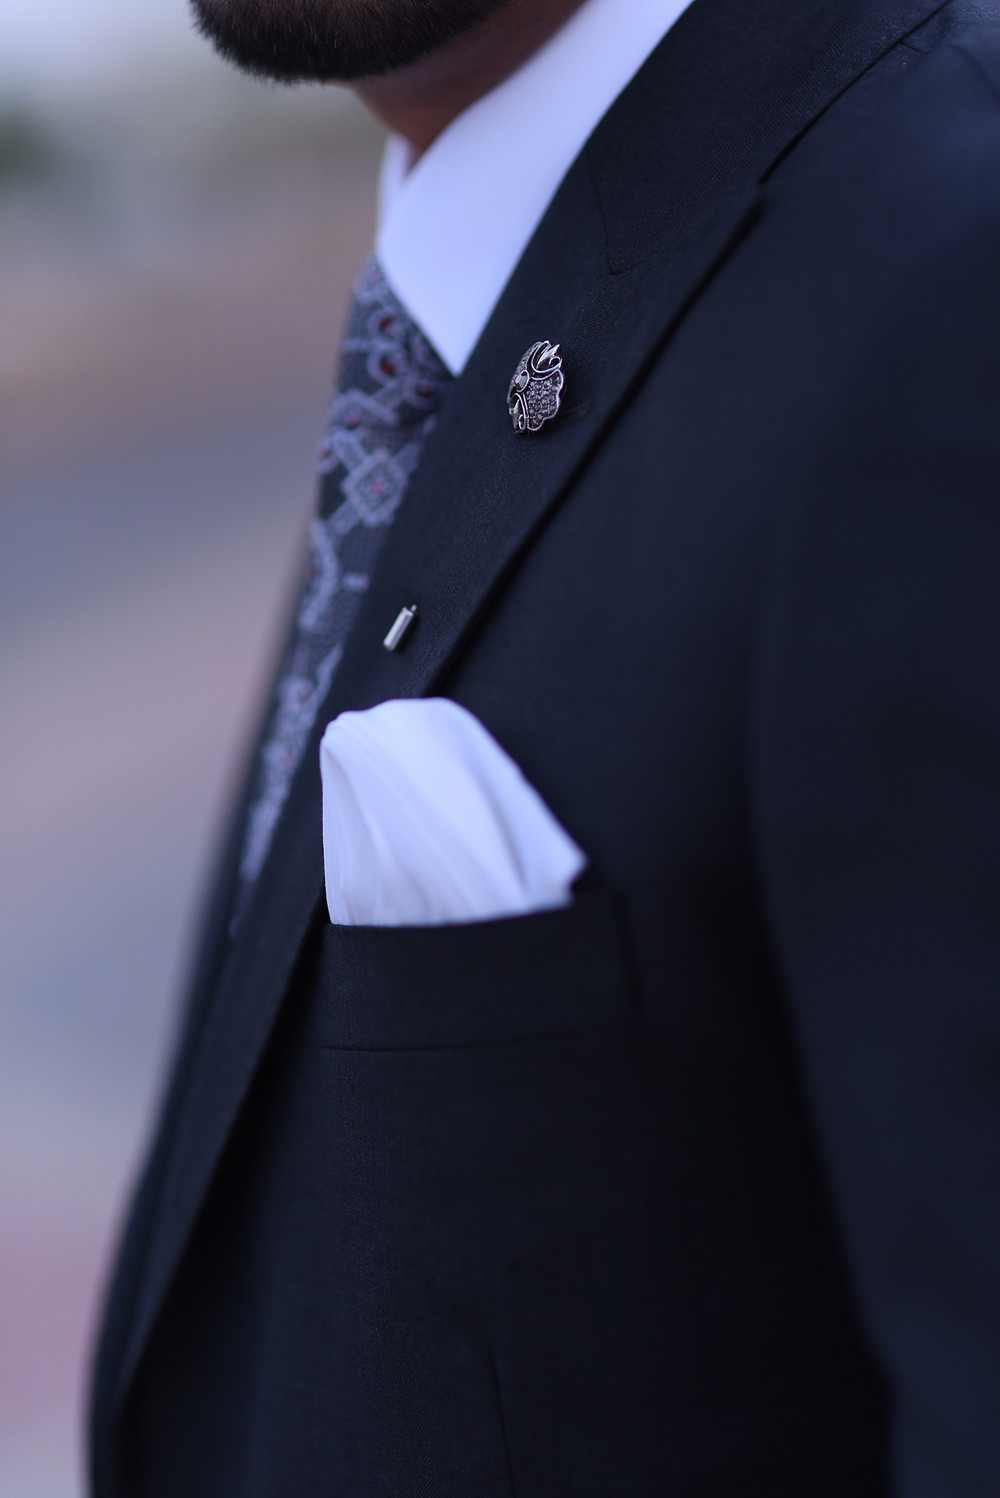 A man in a suit with a white pocket square